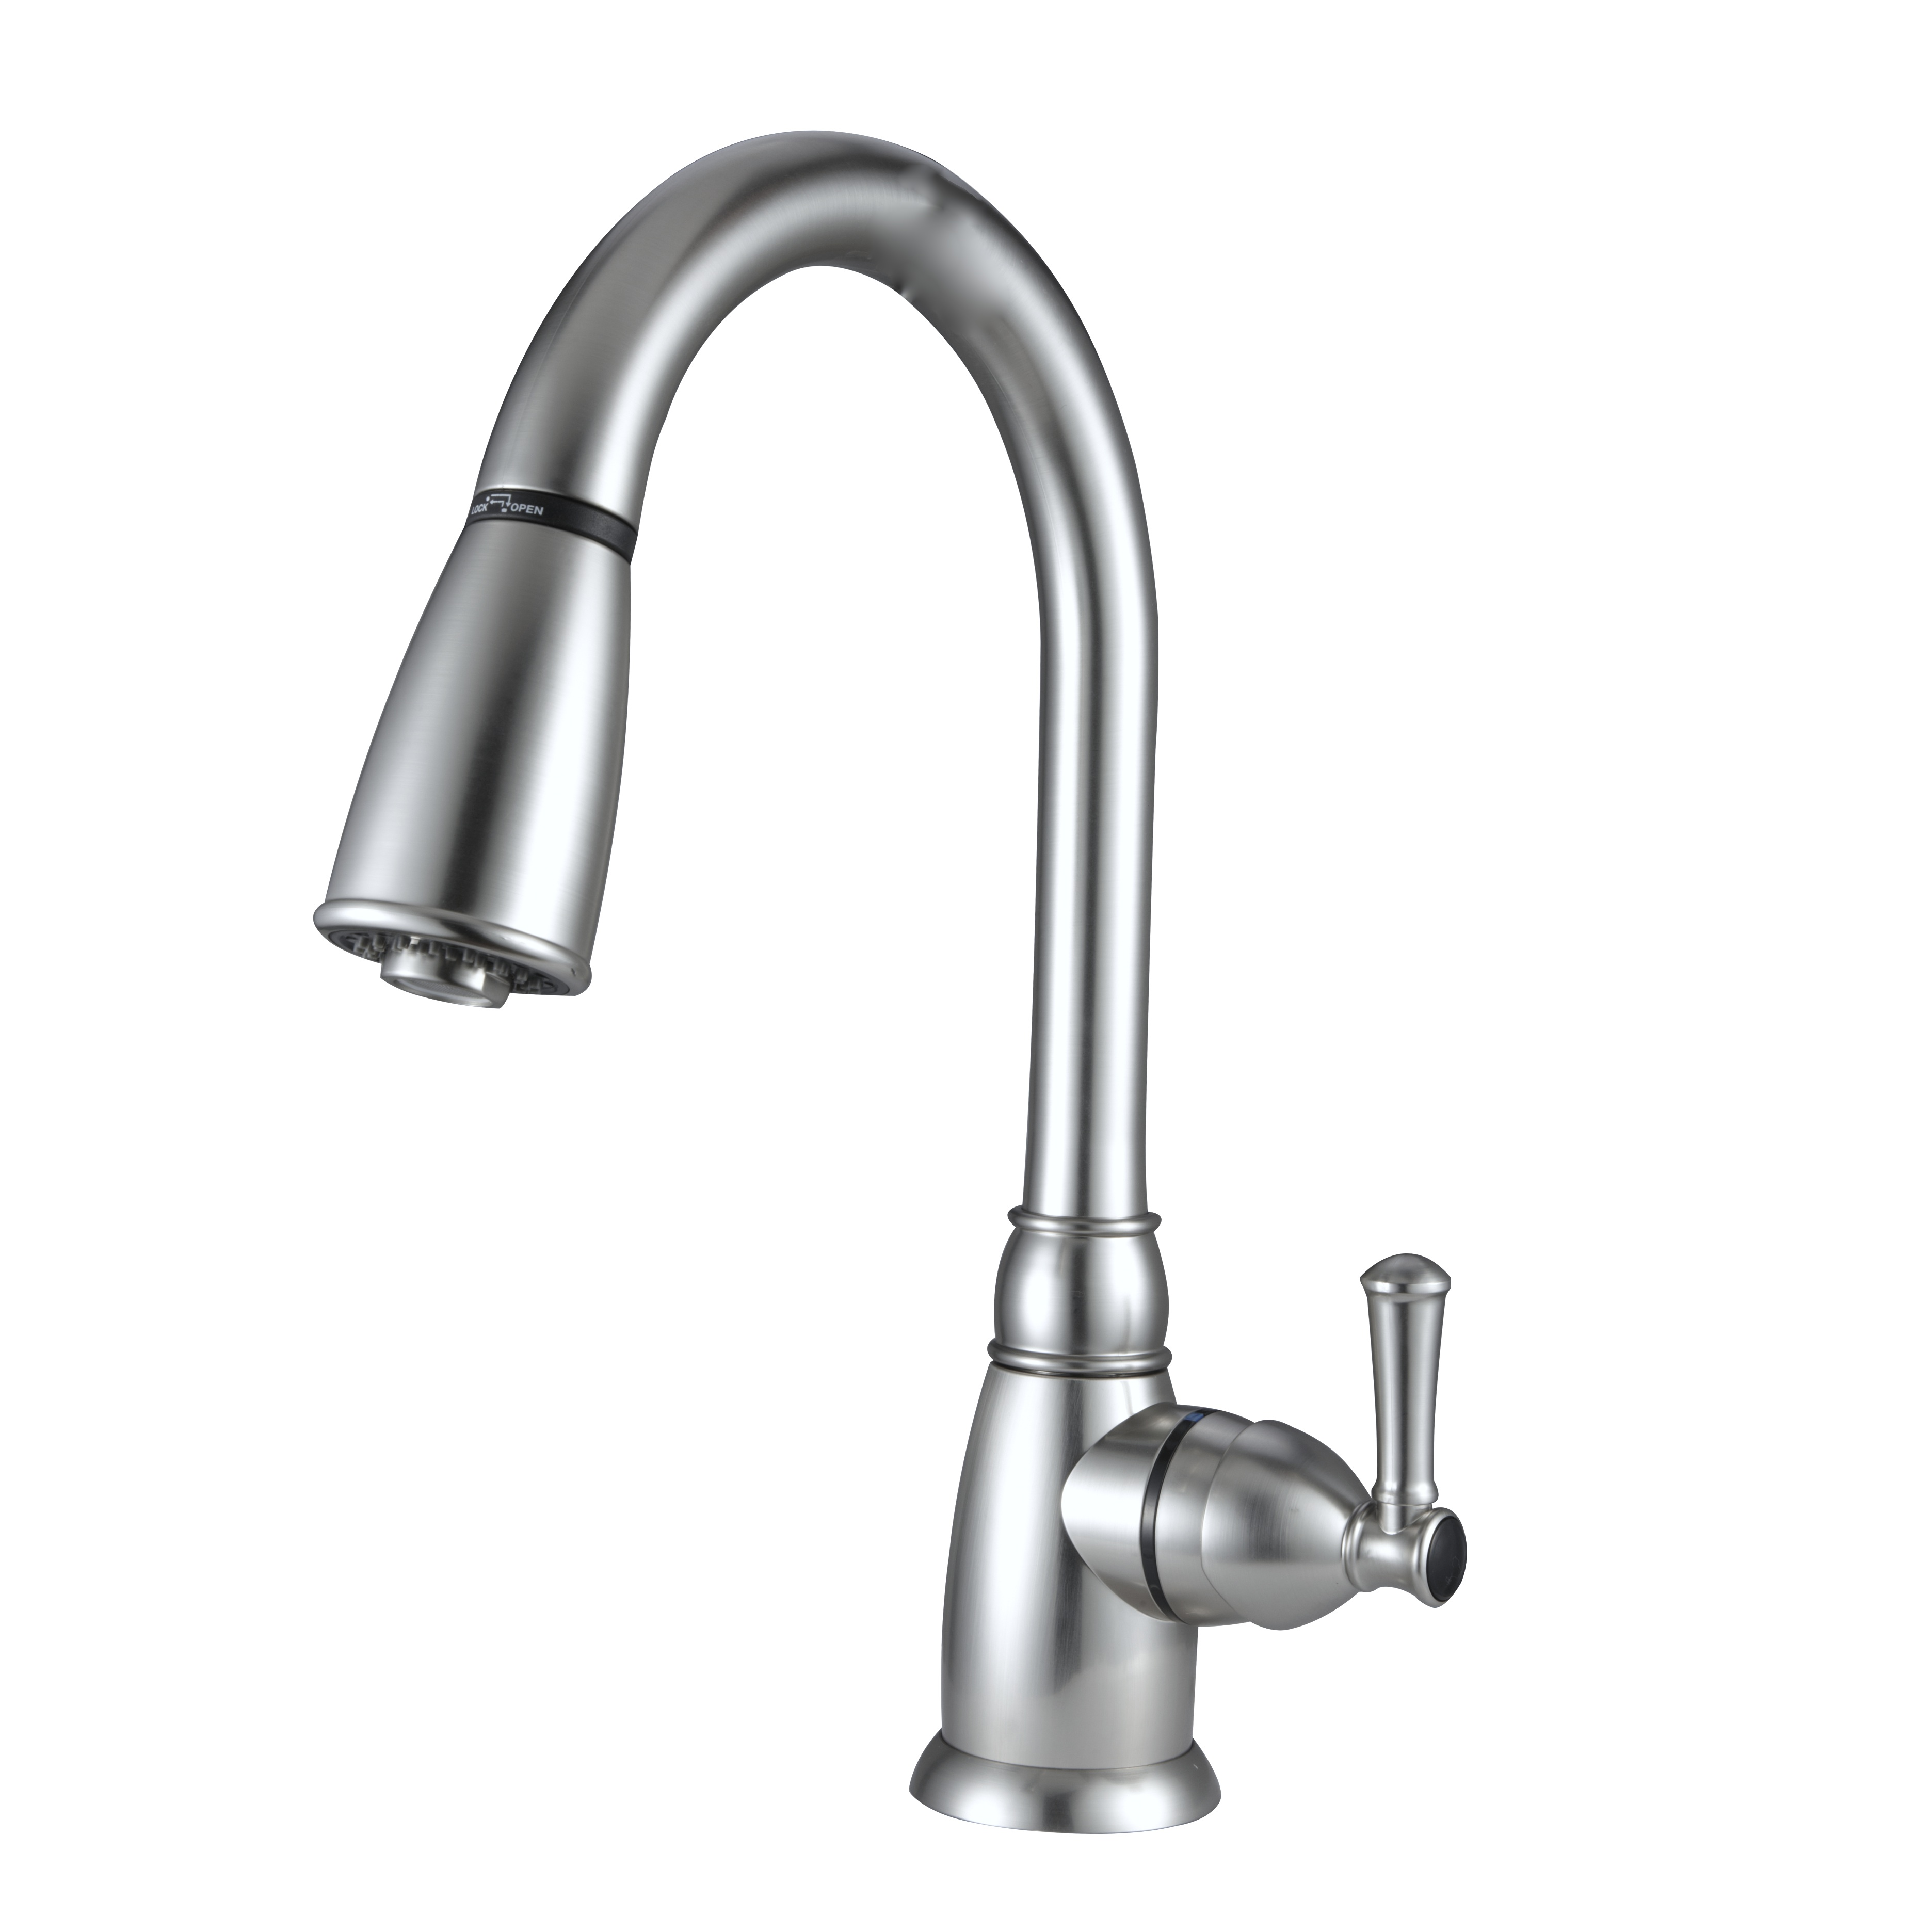 DF-PK160-SN Dura Faucet Faucet Used For Kitchen